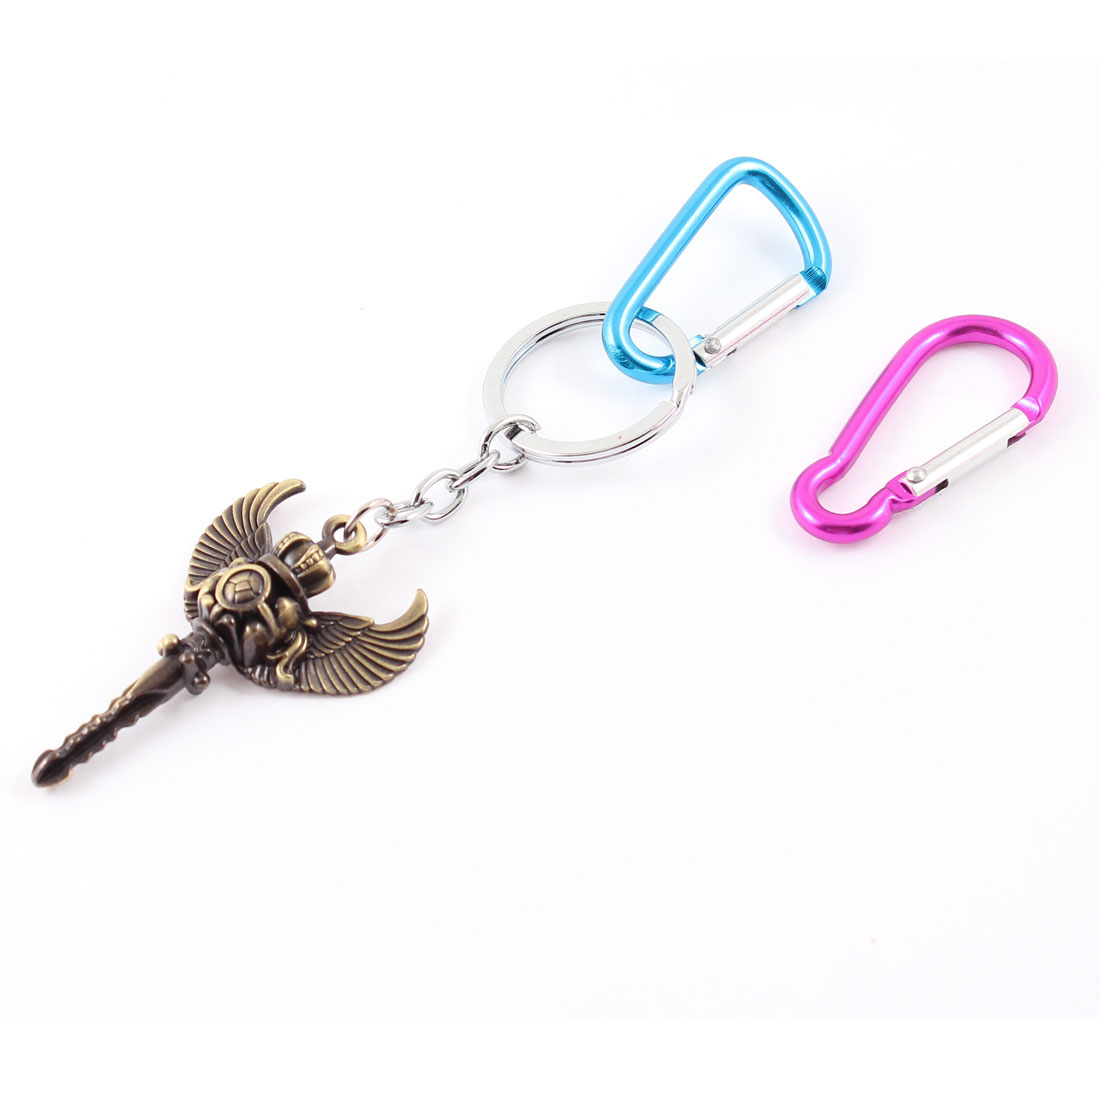 Spring Loaded Gate Carabiner Key Pendant Keyring Keychain Blue Fuchsia 3 in 1